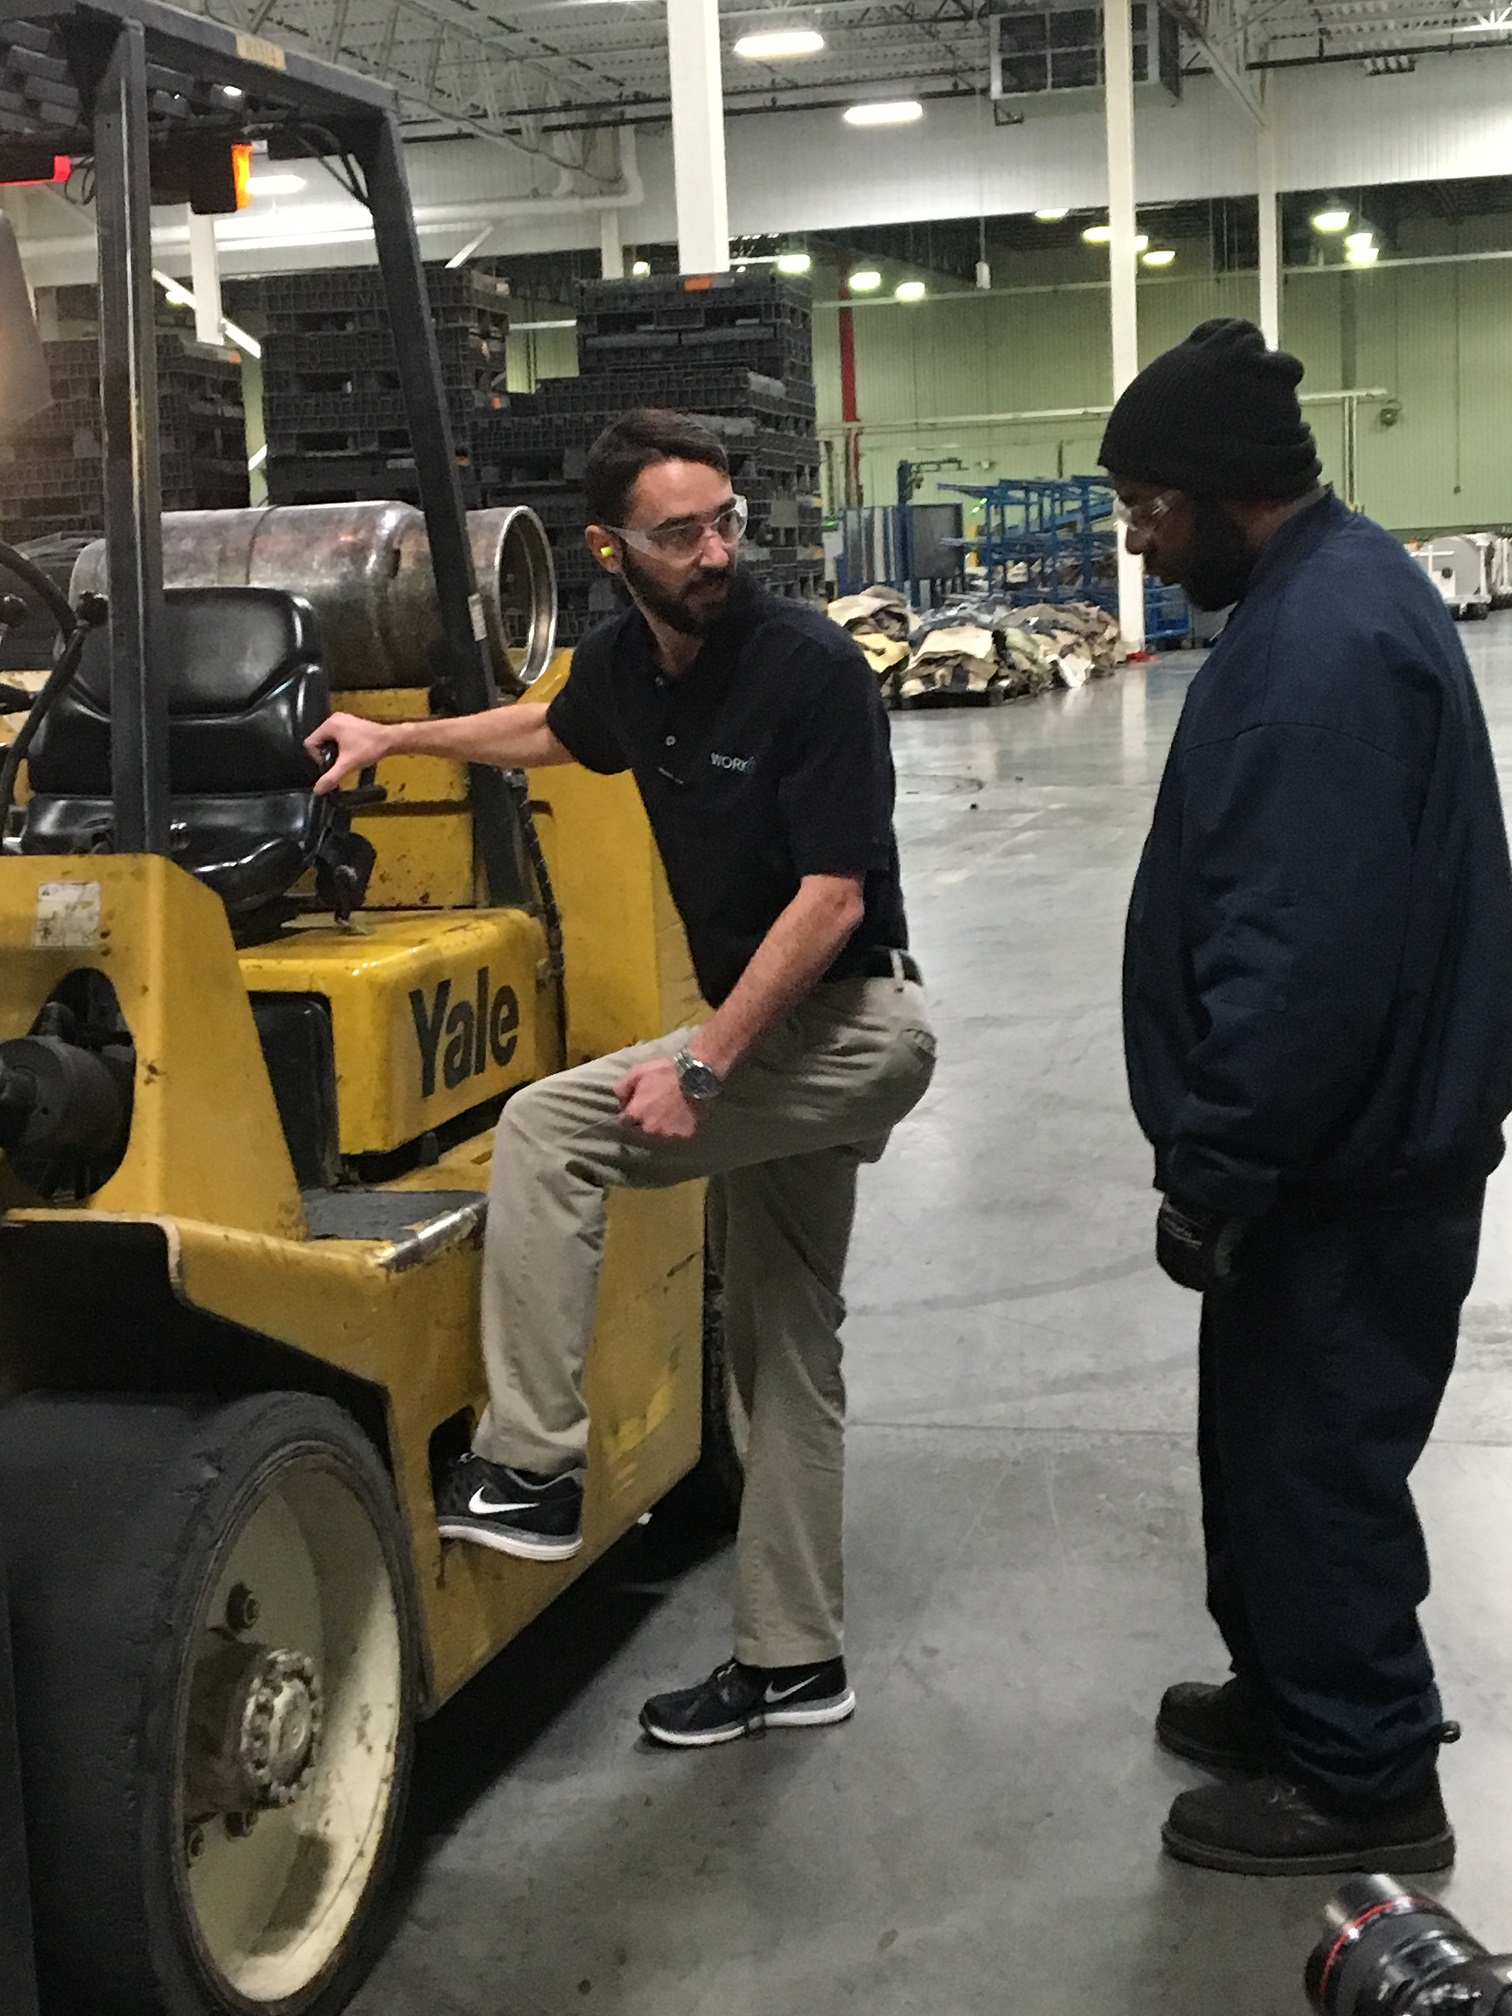 person instructing someone else on the forklift